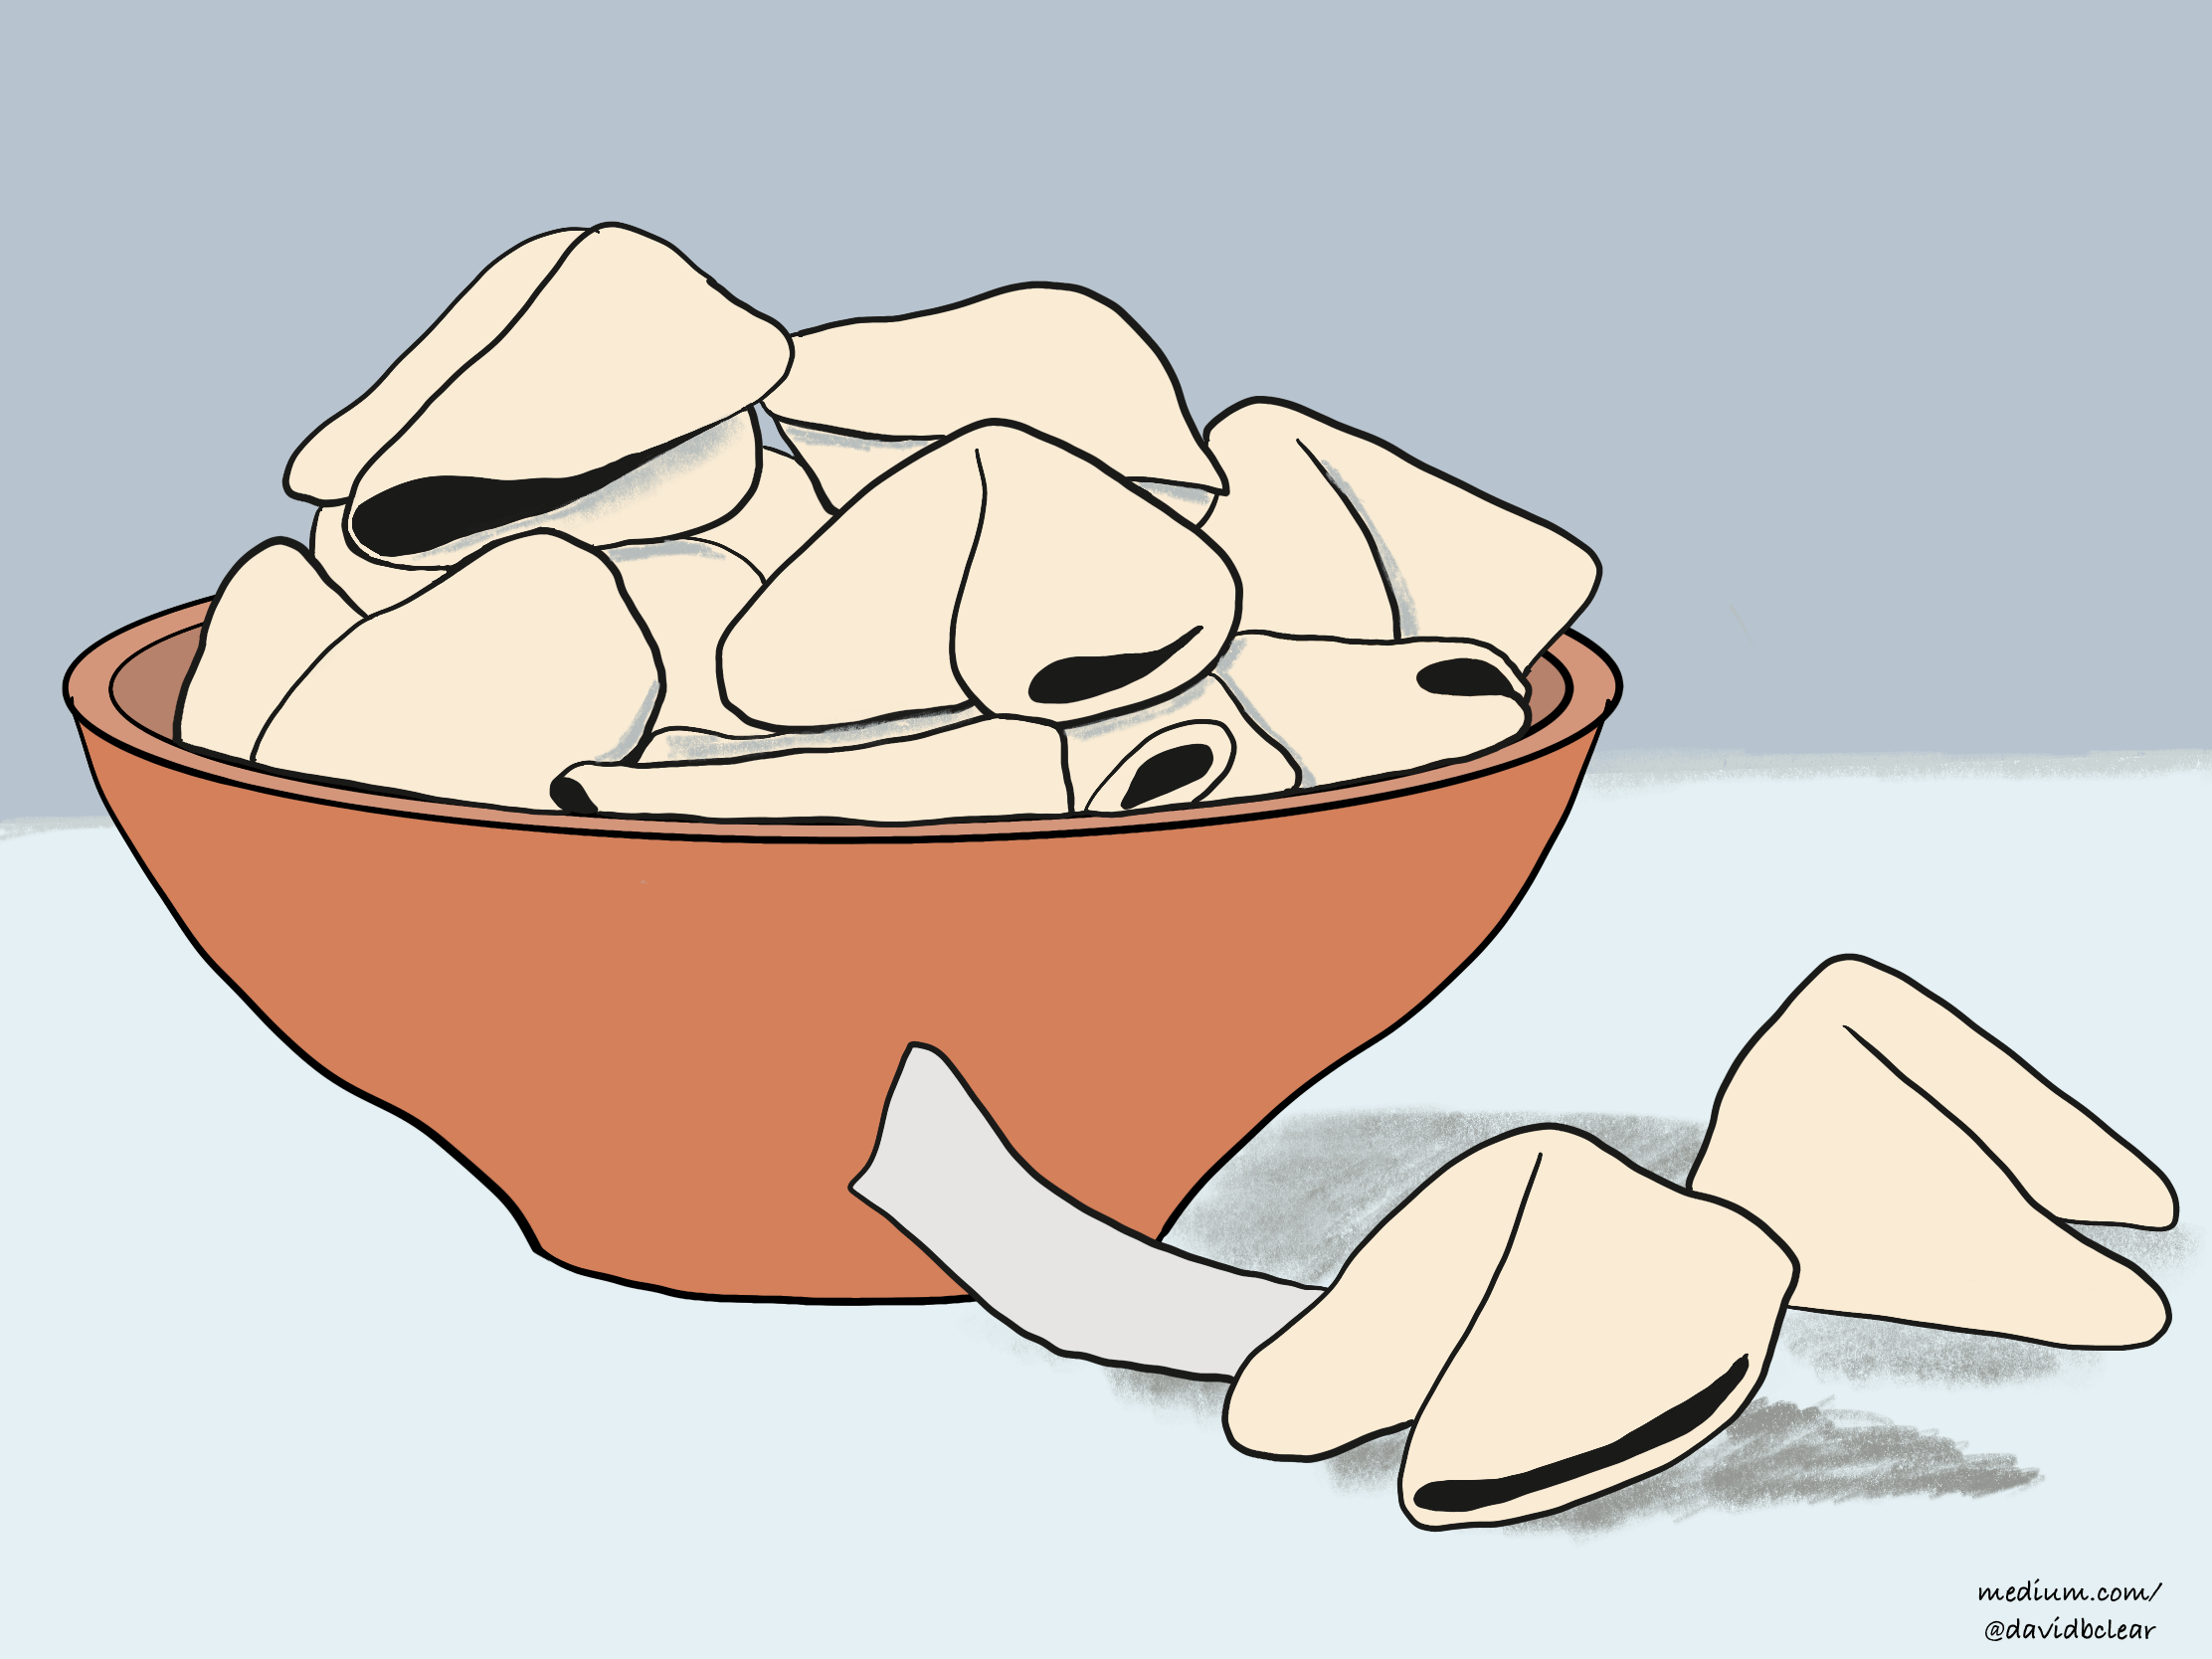 A bowl of fortune cookies.